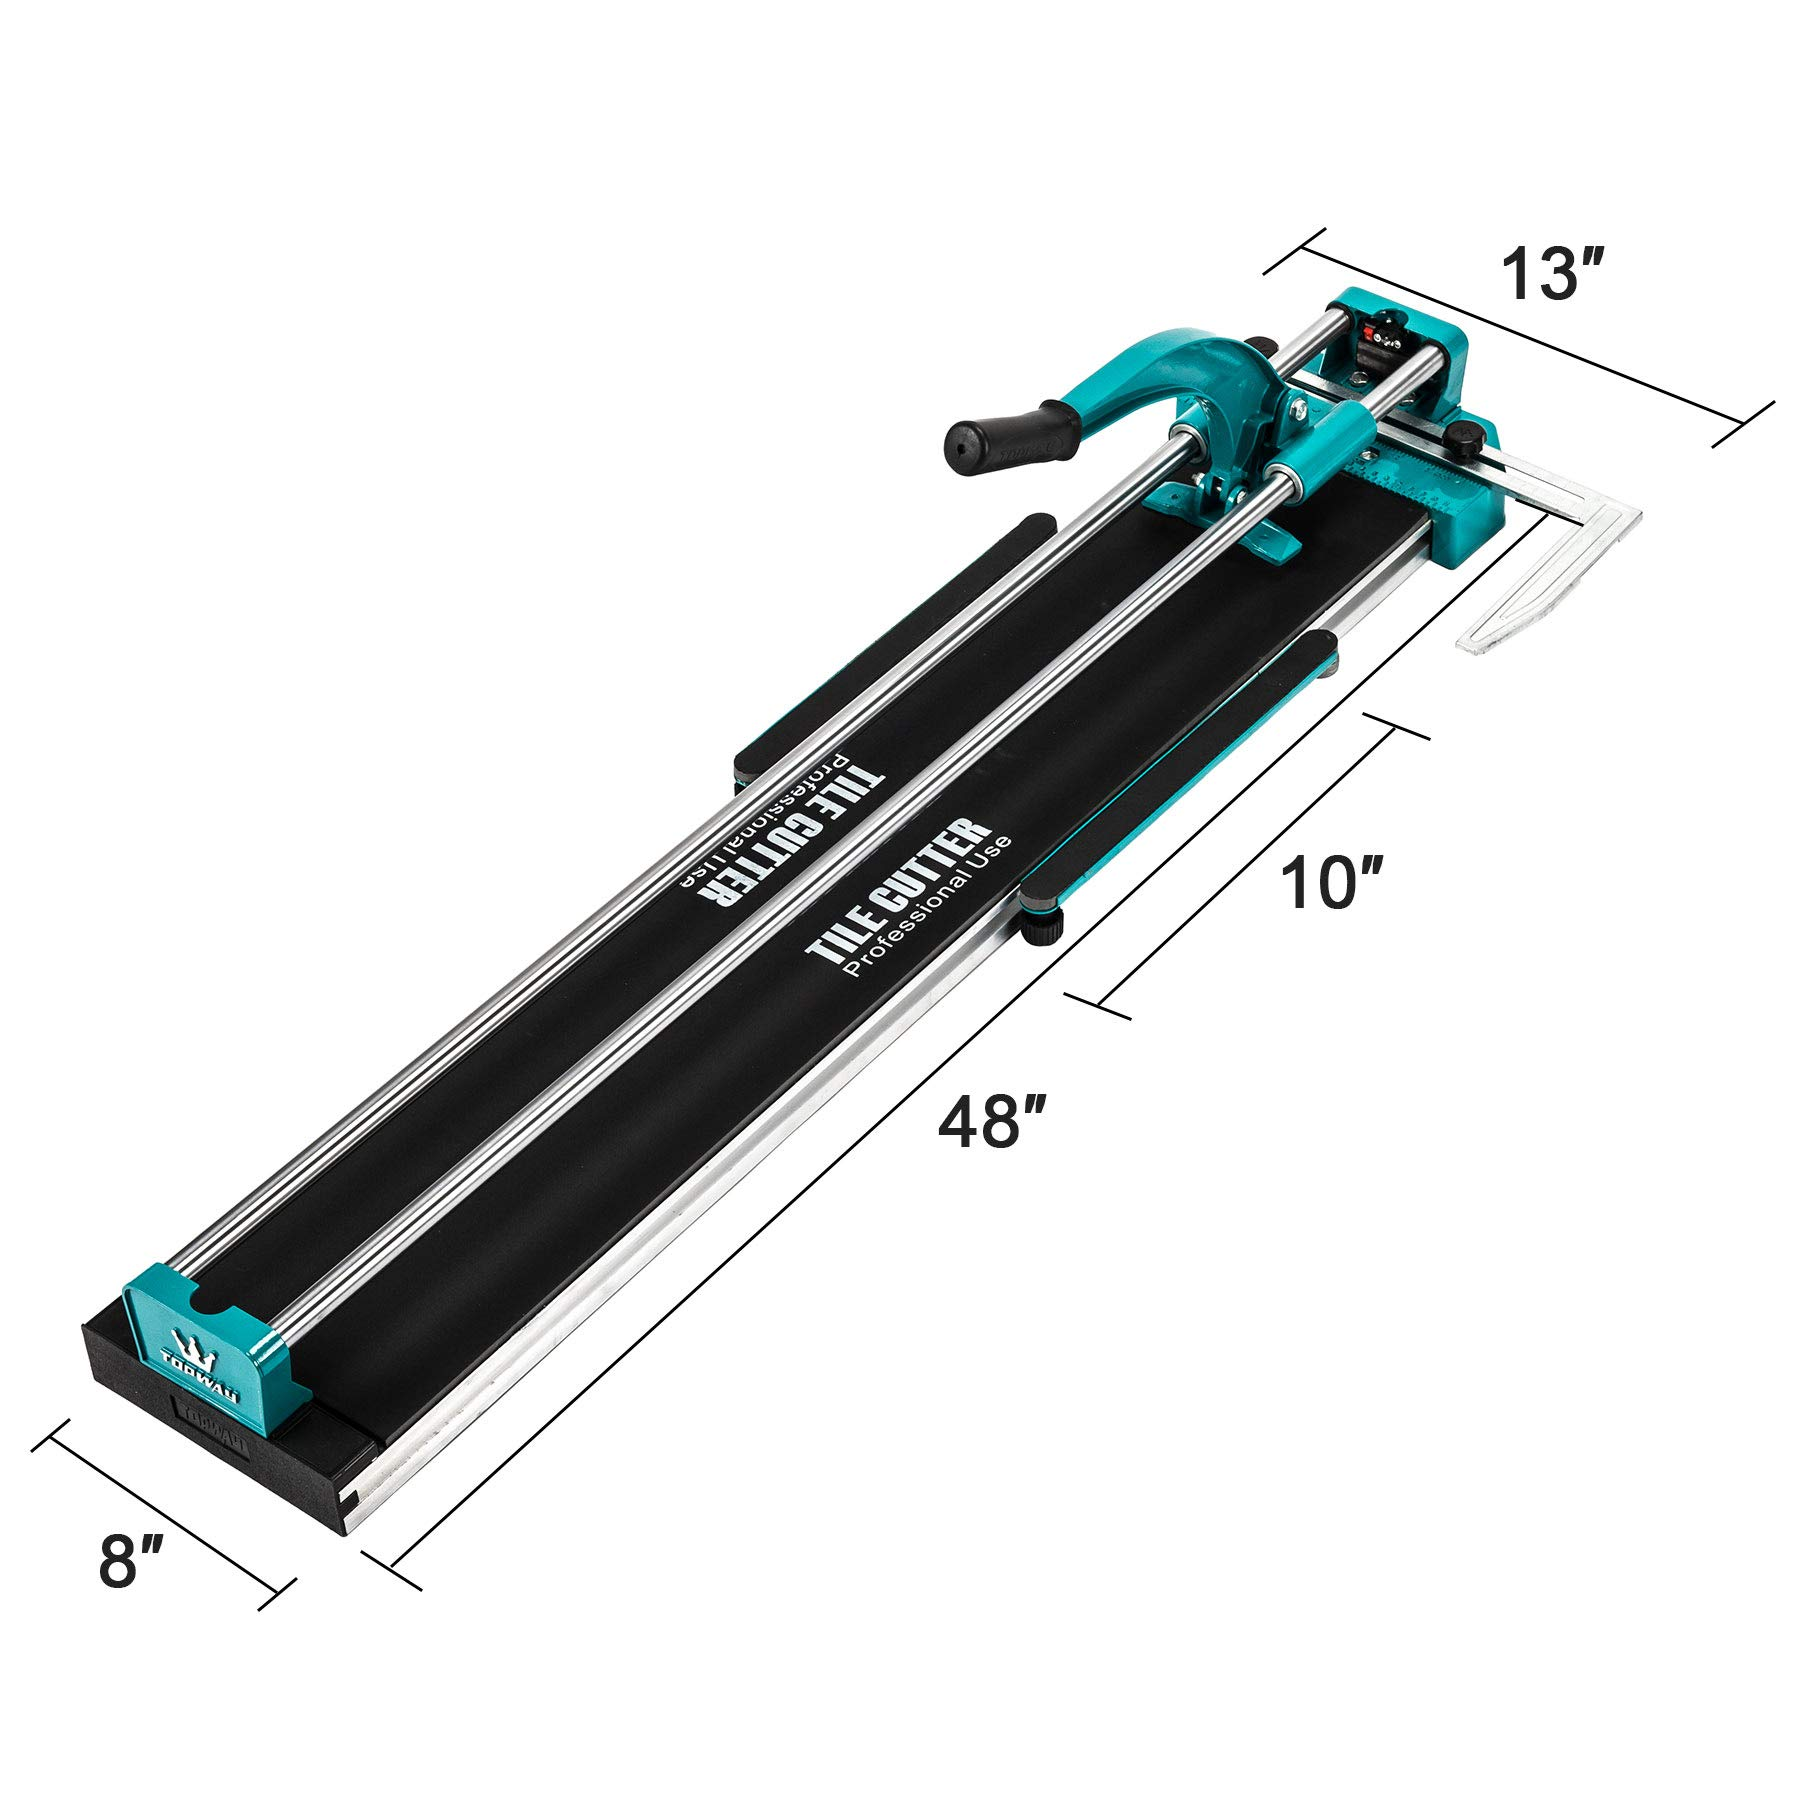 CO-Z Manual Tile Cutter 40'' Cutting Length Professional Porcelain Ceramic Floor Tile Cutter Machine Adjustable Laser Guide for Precision Cutting (40 inch) by CO-Z (Image #3)